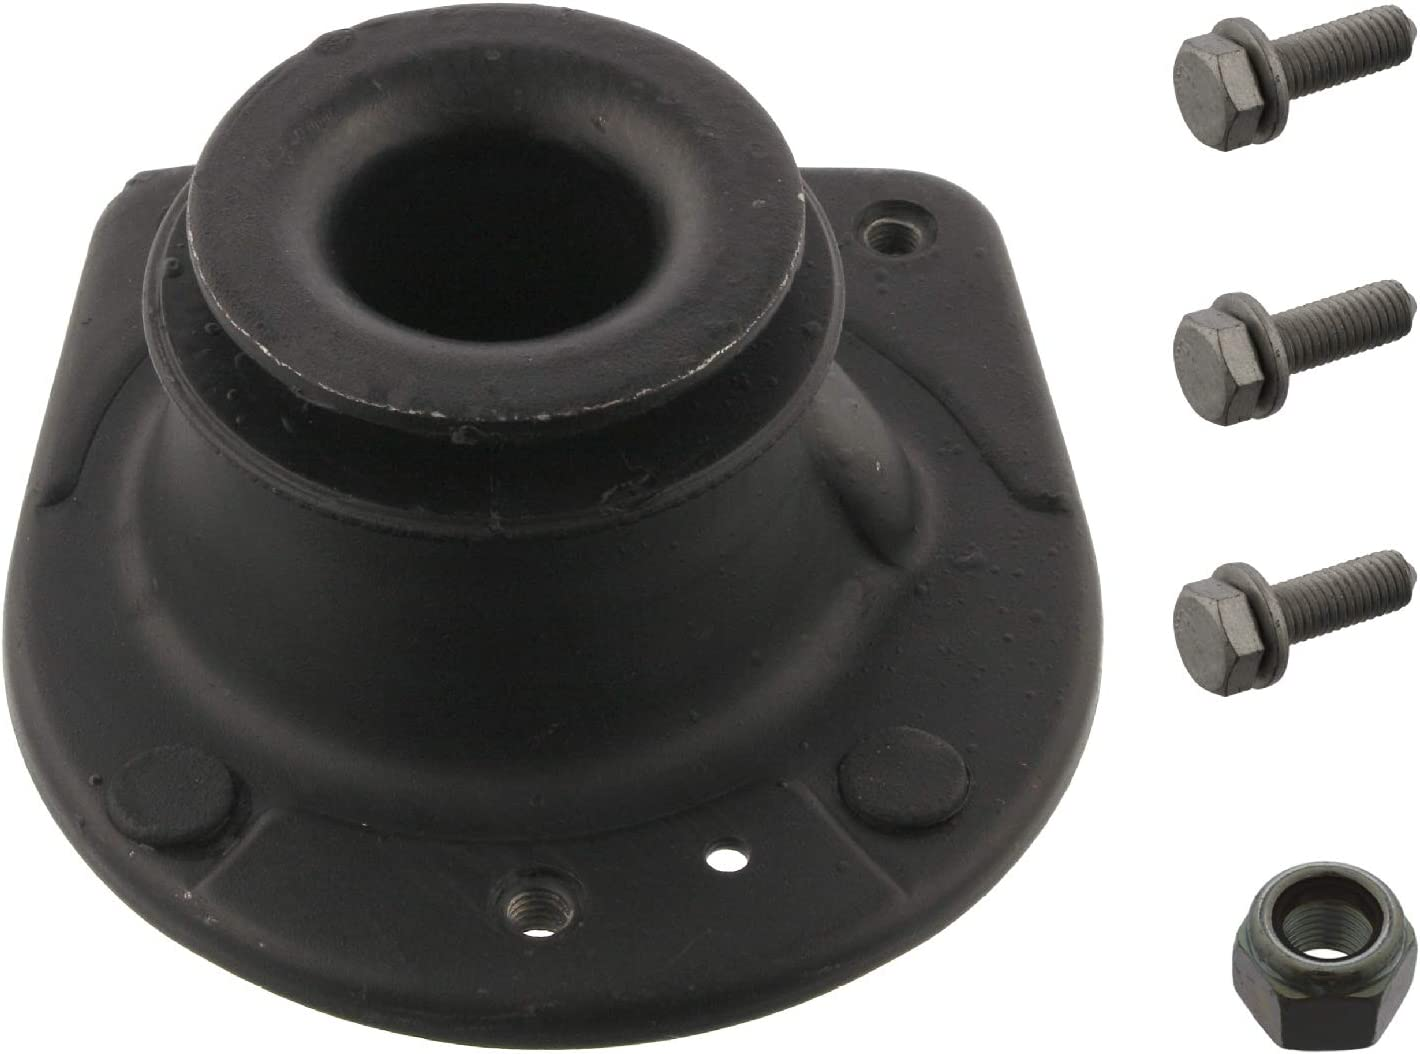 febi bilstein 38109 Strut Top Mounting Kit with ball bearing pack of one screws and nuts